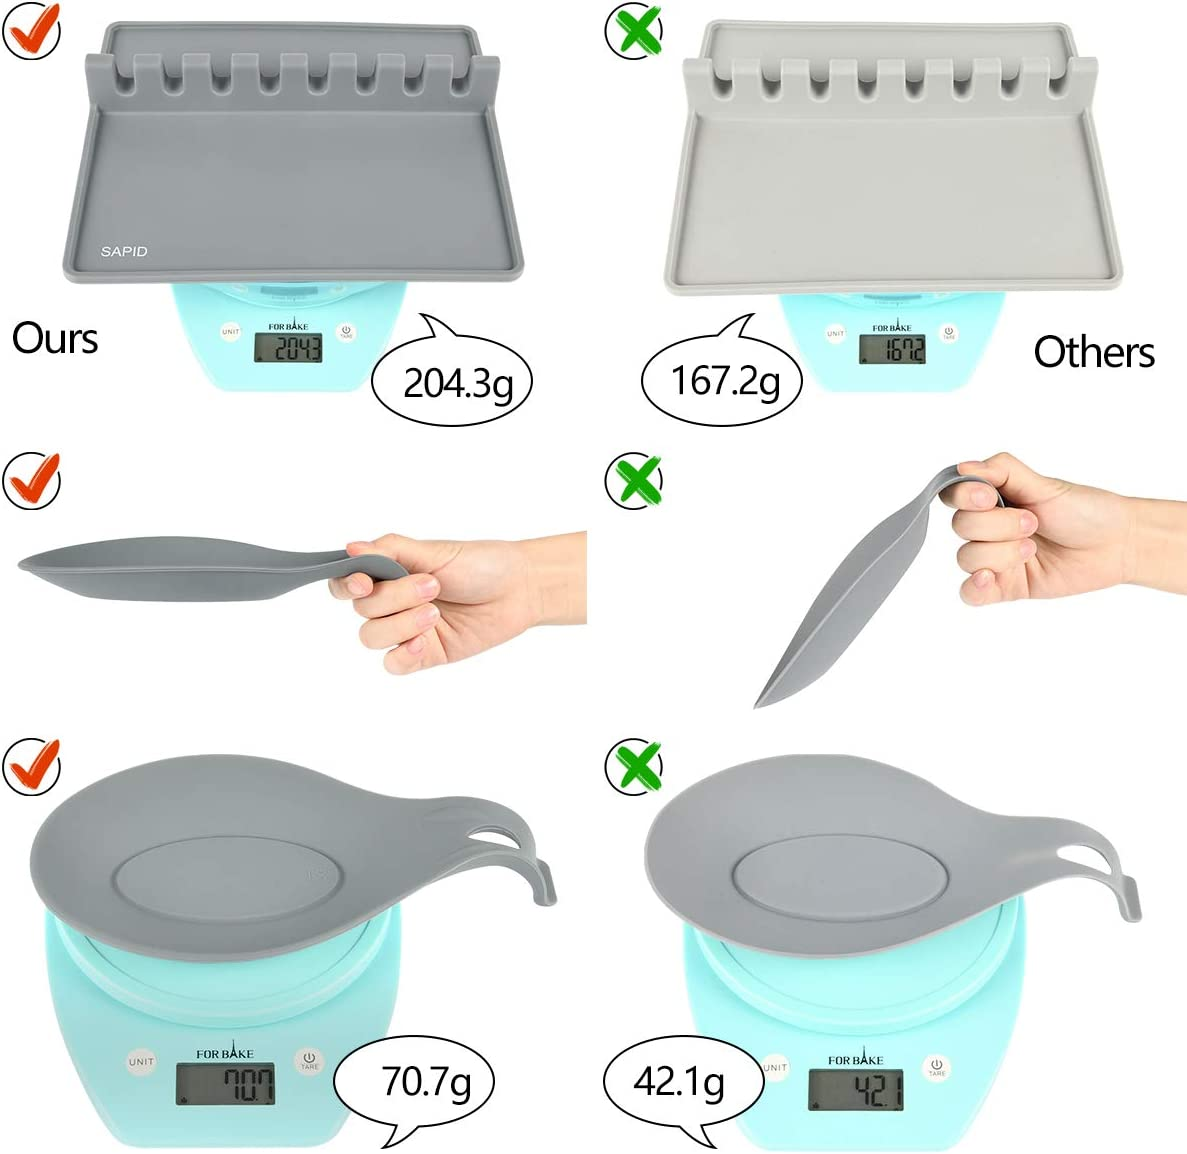 Sapid Extra Large Silicone Utensil Rest with Drip Pad for Multiple Utensils Tongs Counter Heat Resistance Spoon Holder for Stove Top 2 Pcs, Black Ladle Thick Spoon Rest for Spatula Fork